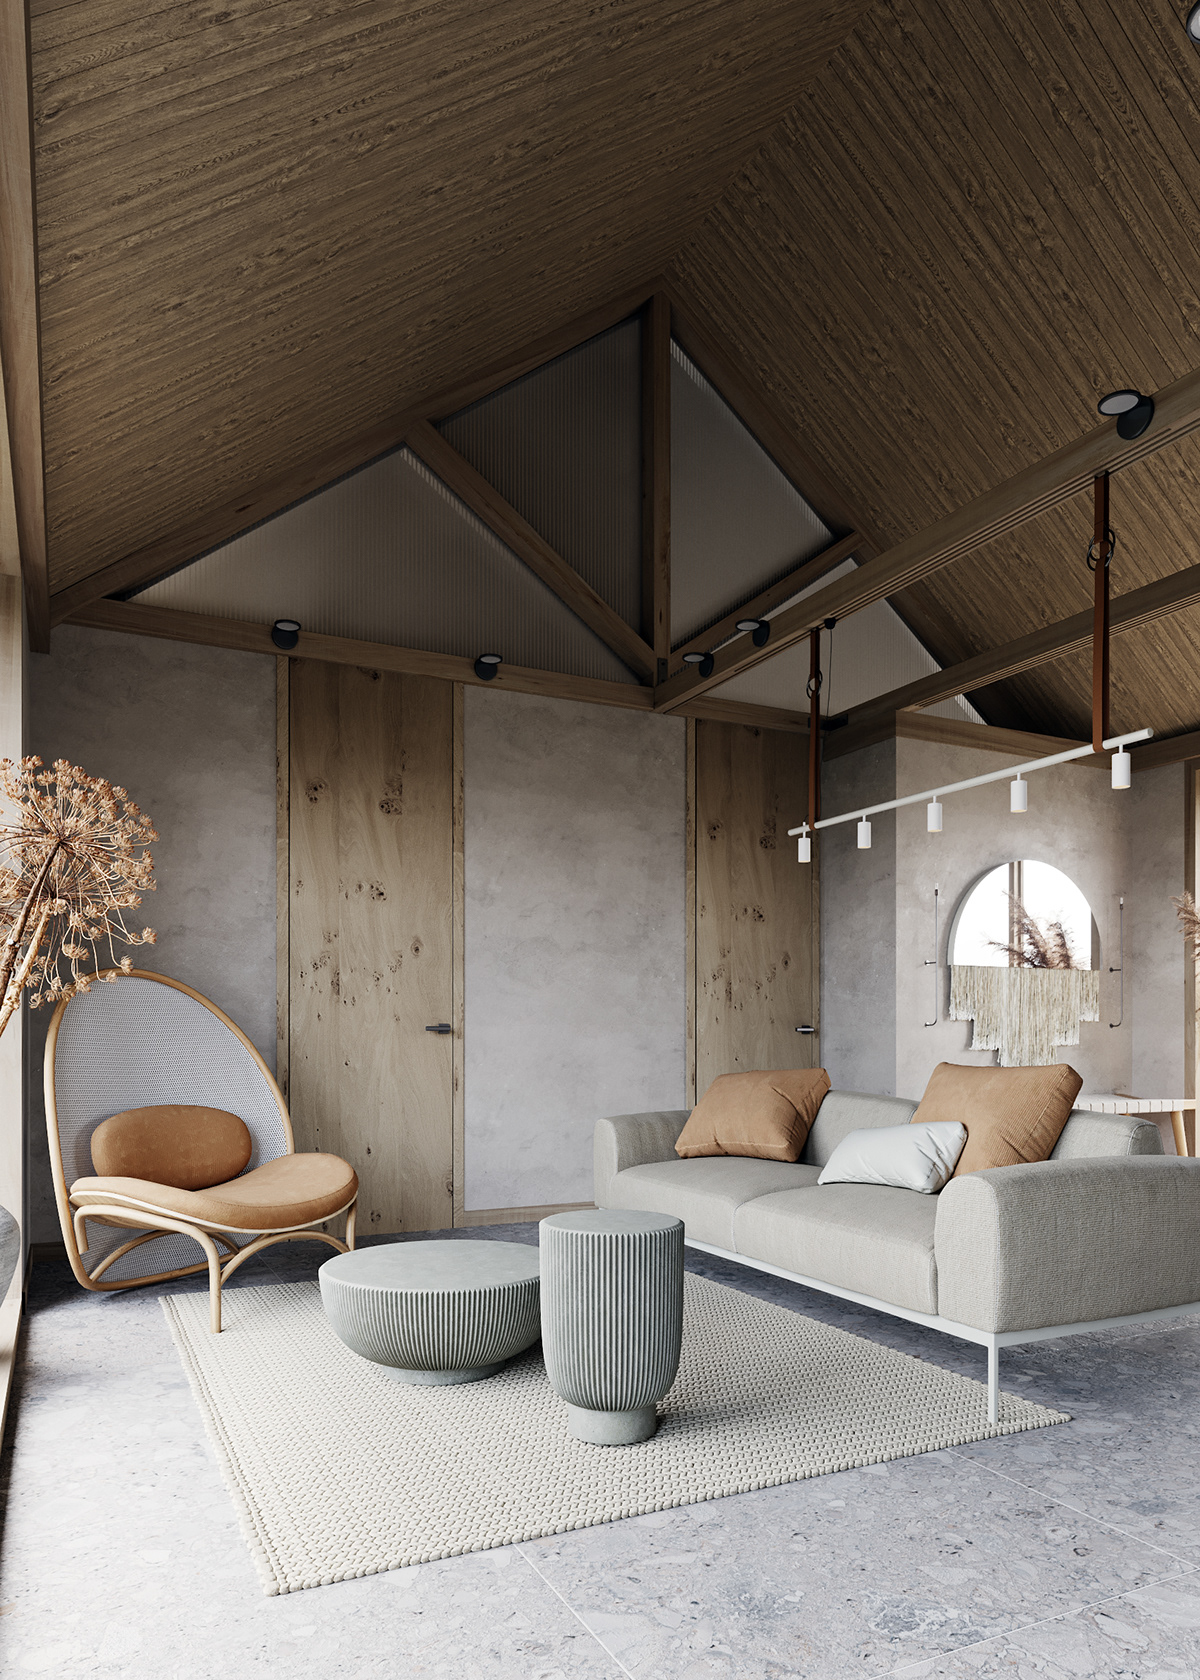 vaulted ceiling of the beautiful home - nature in the home